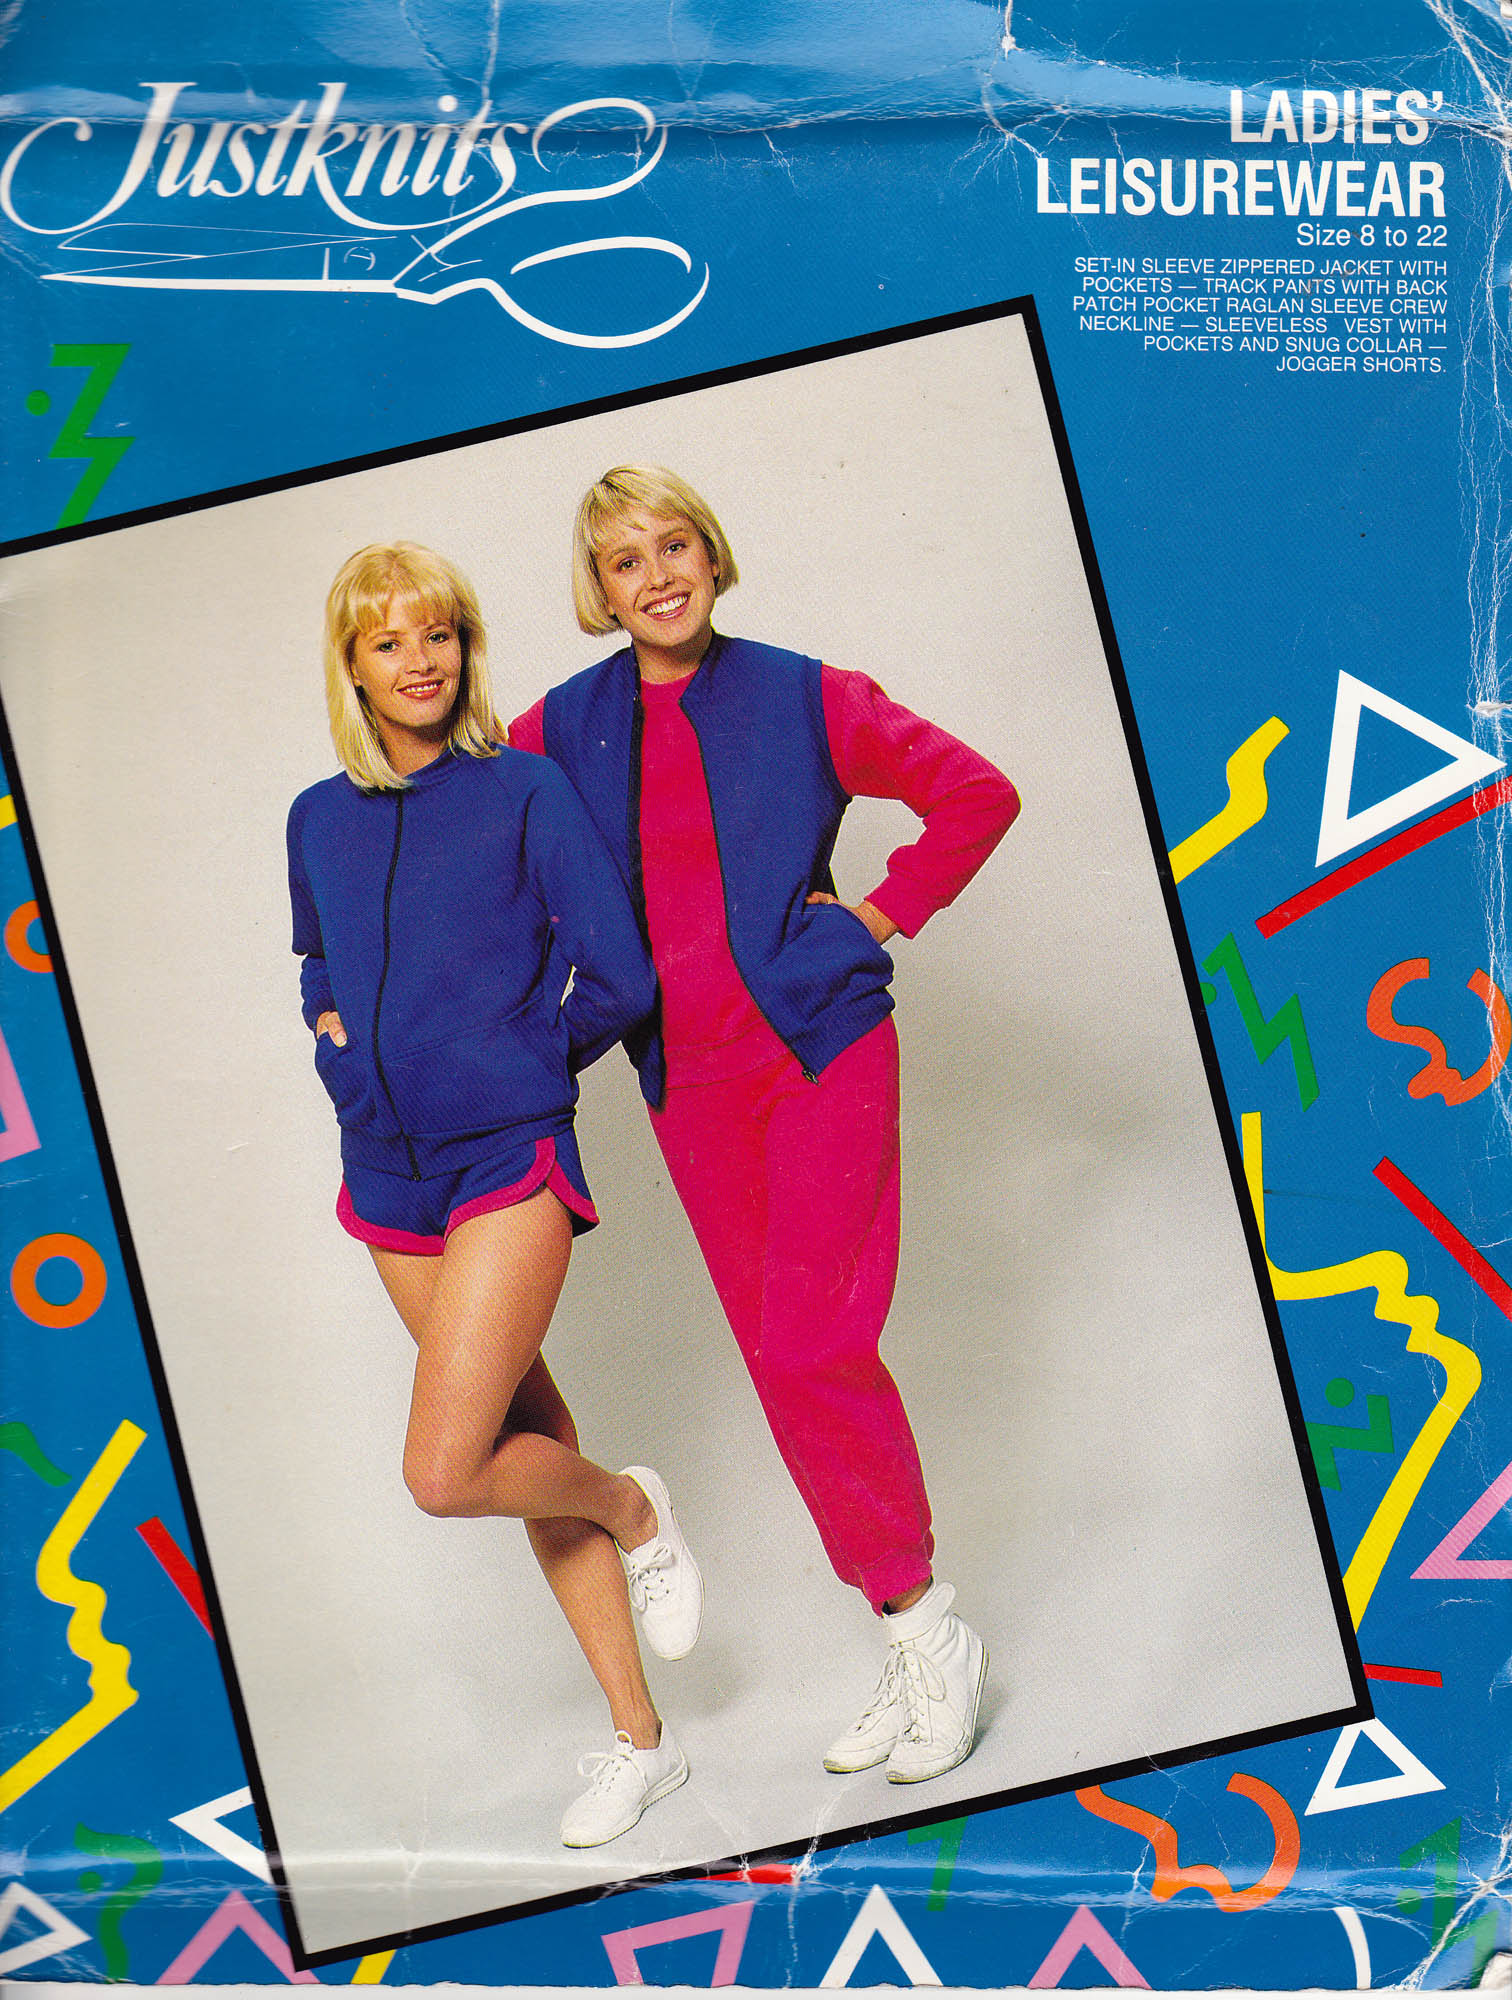 Justknits Ladies' Leisurewear